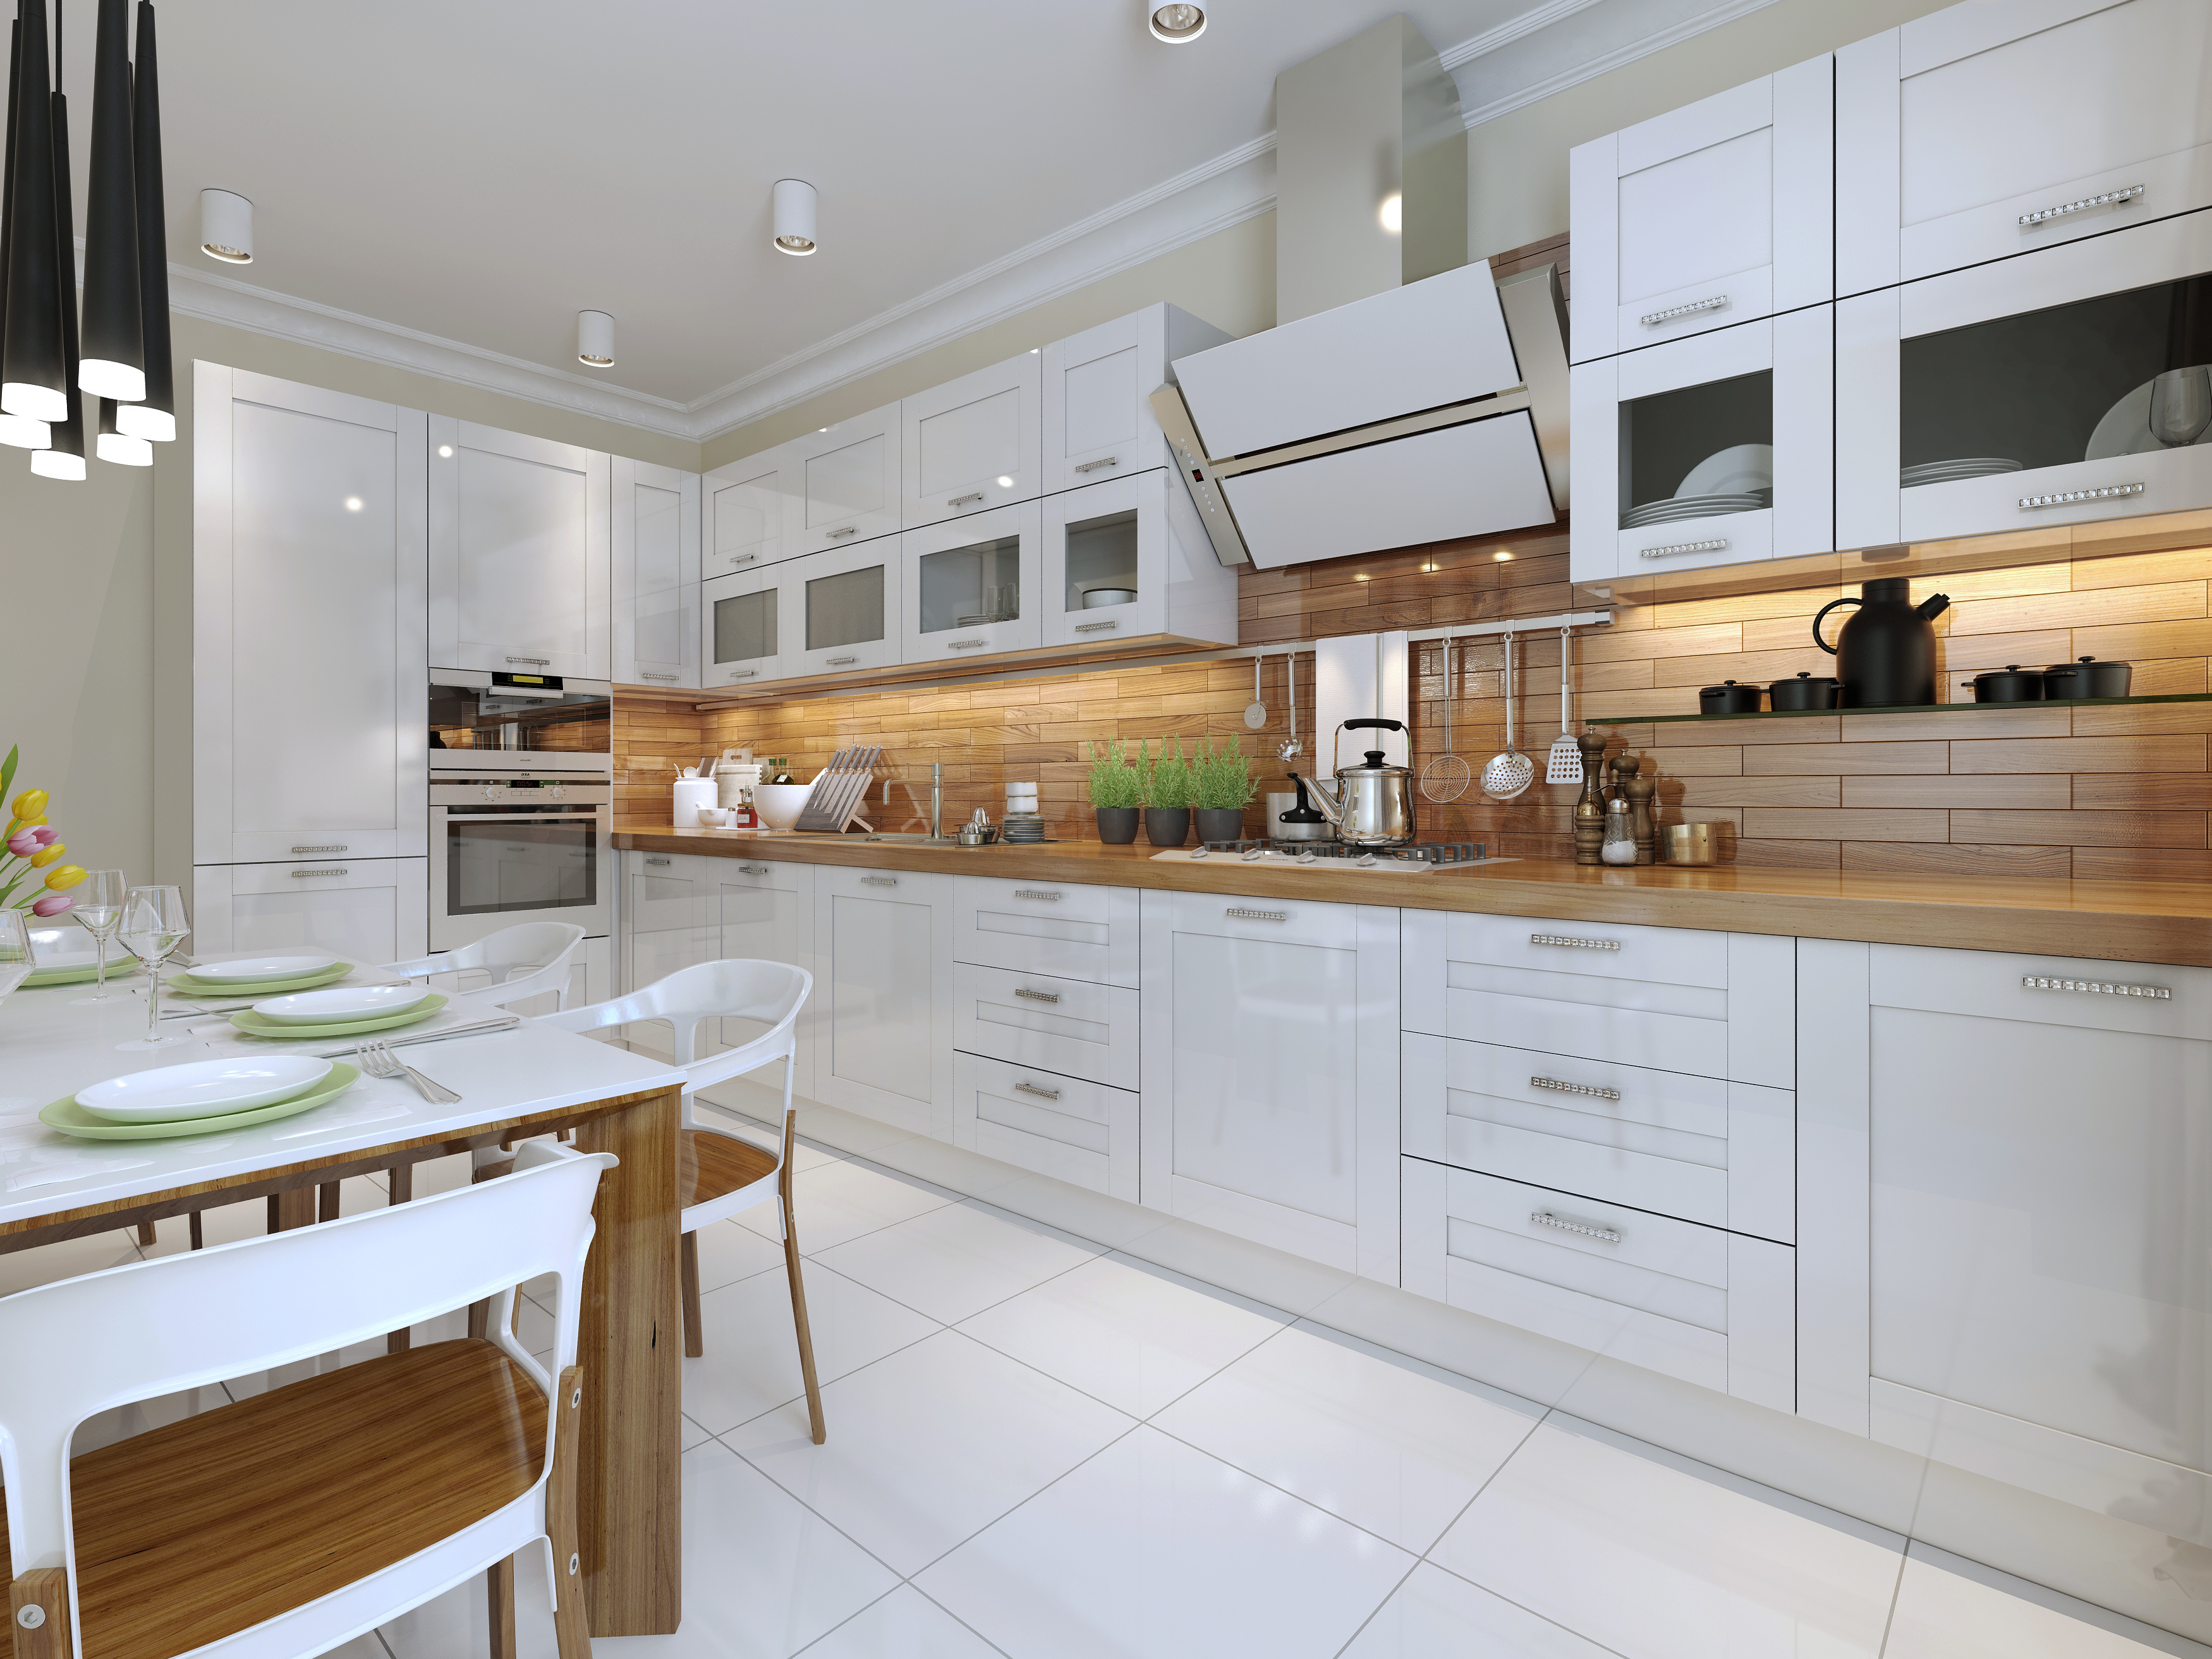 Magnificent Classic Kitchen Design 600 x 562 · 69 kB · jpeg